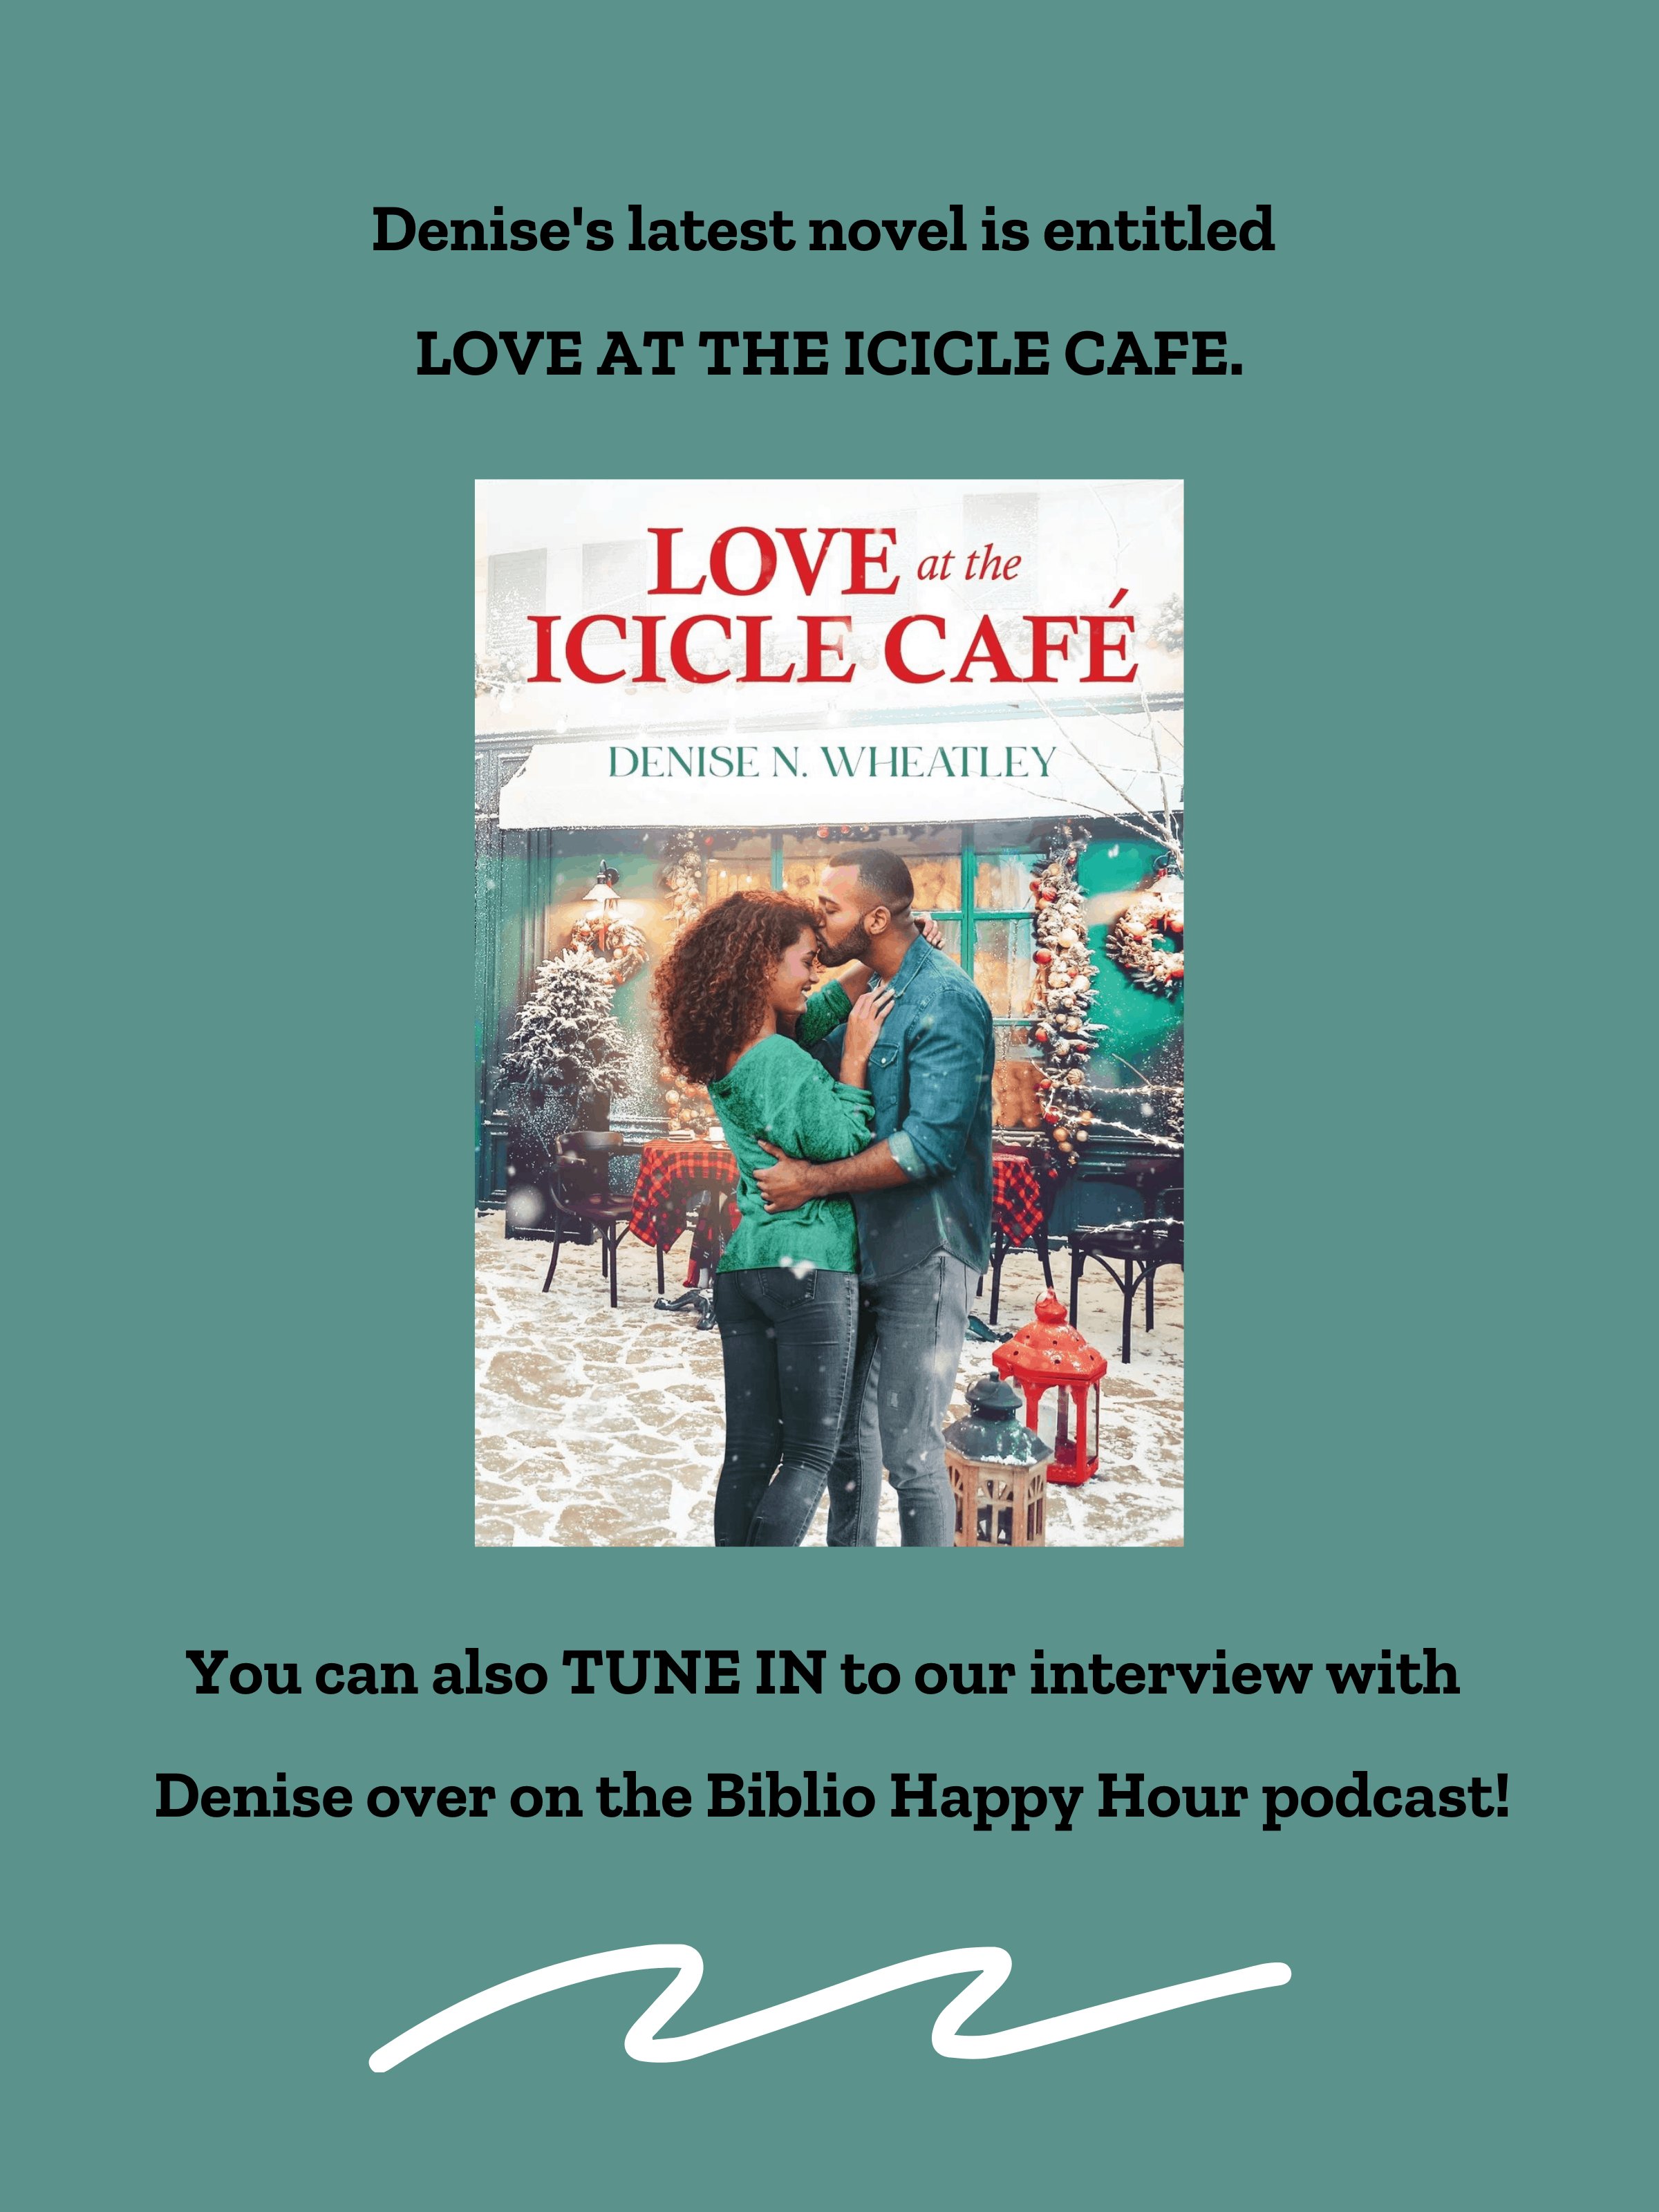 Love at the Icicle Cafe by Denise N Wheatley